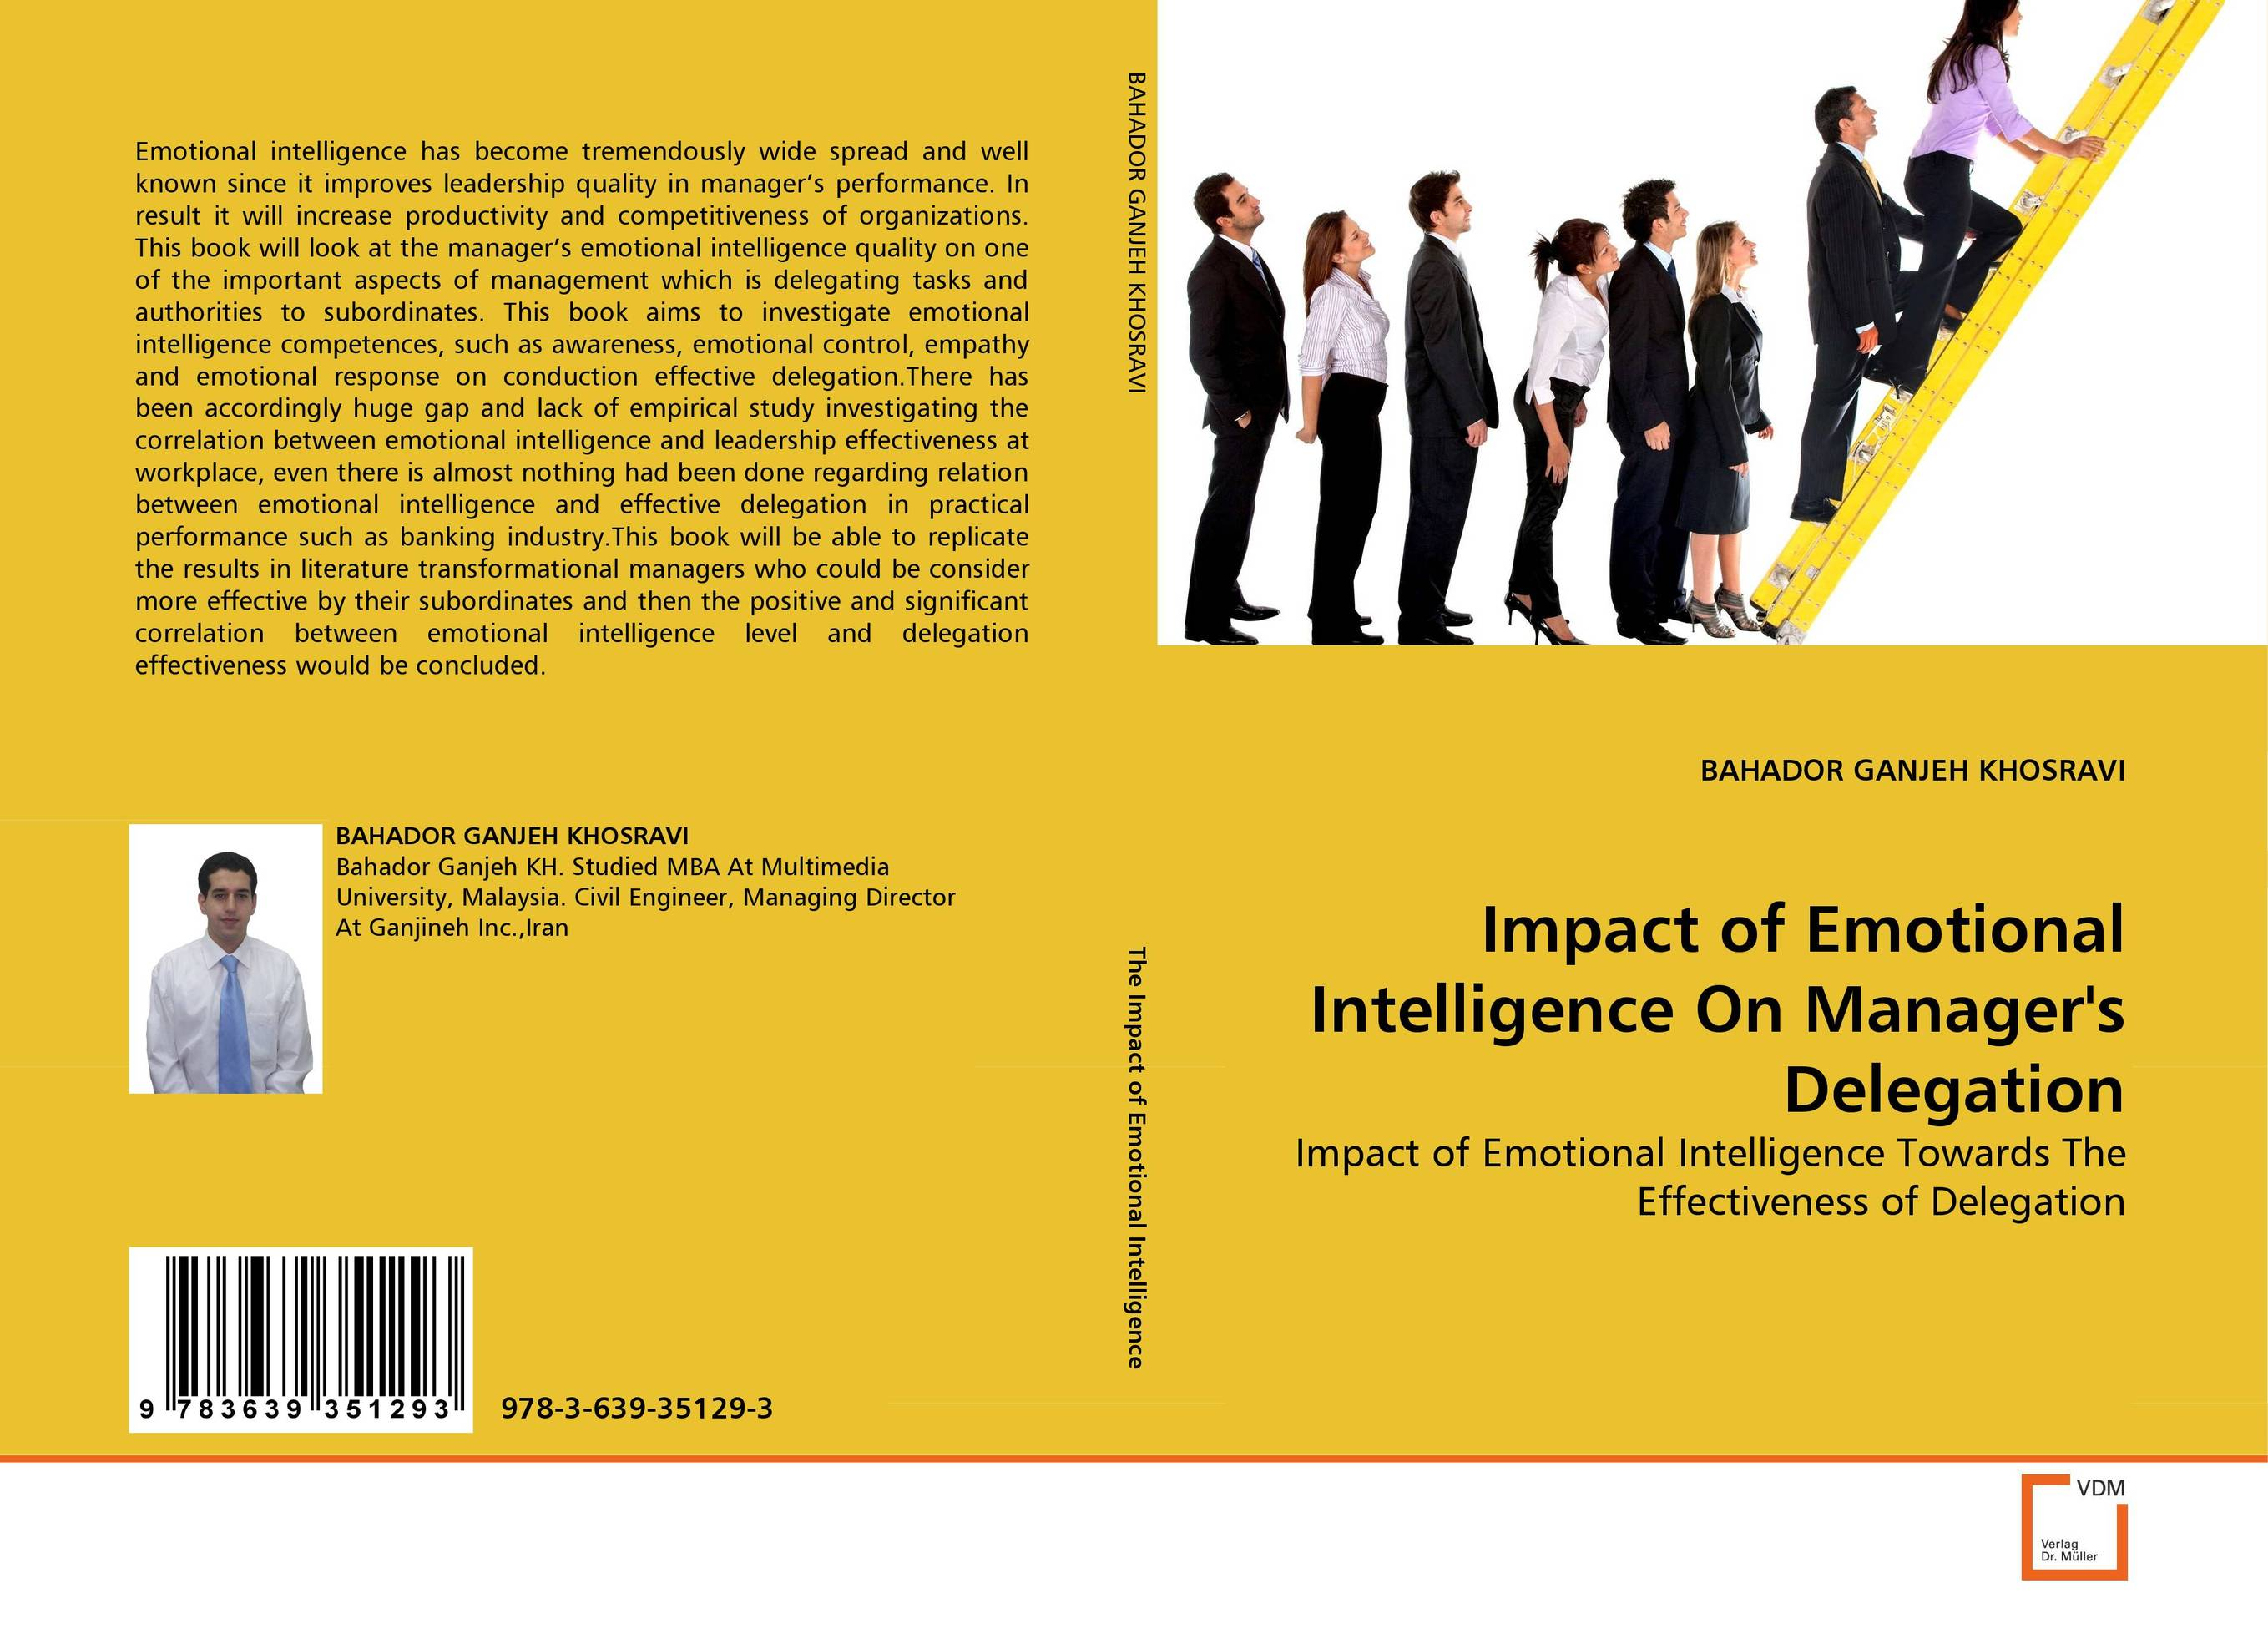 Impact of Emotional Intelligence On Manager''s Delegation